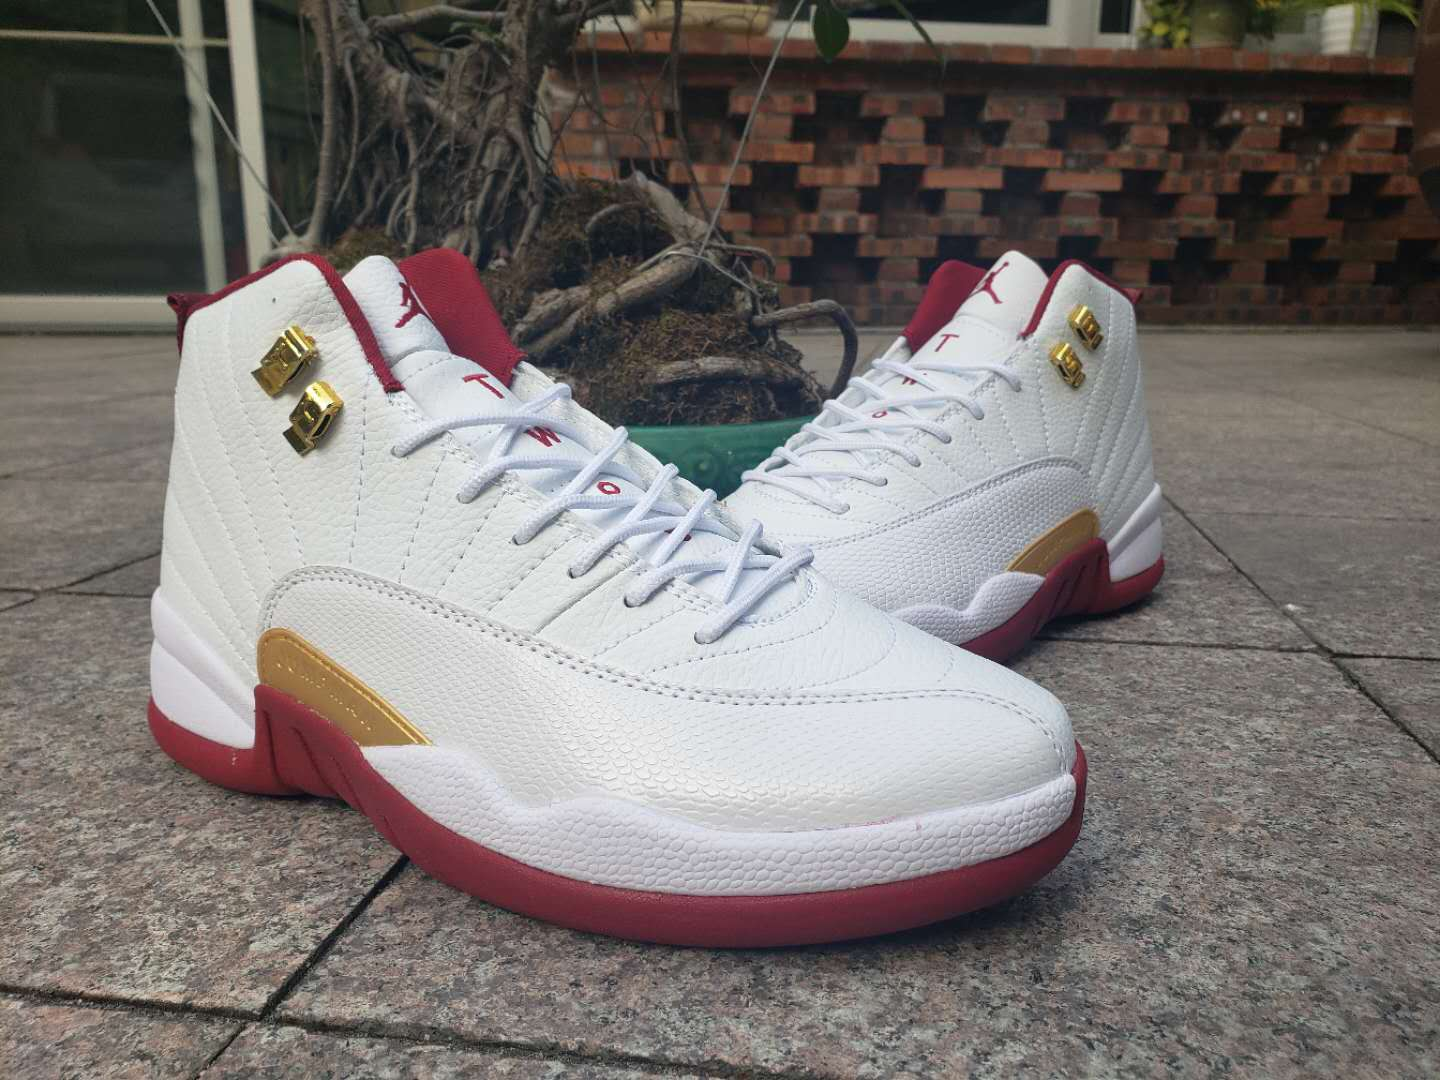 2019 Air Jordan 12 White Wine Red Gold Shoes